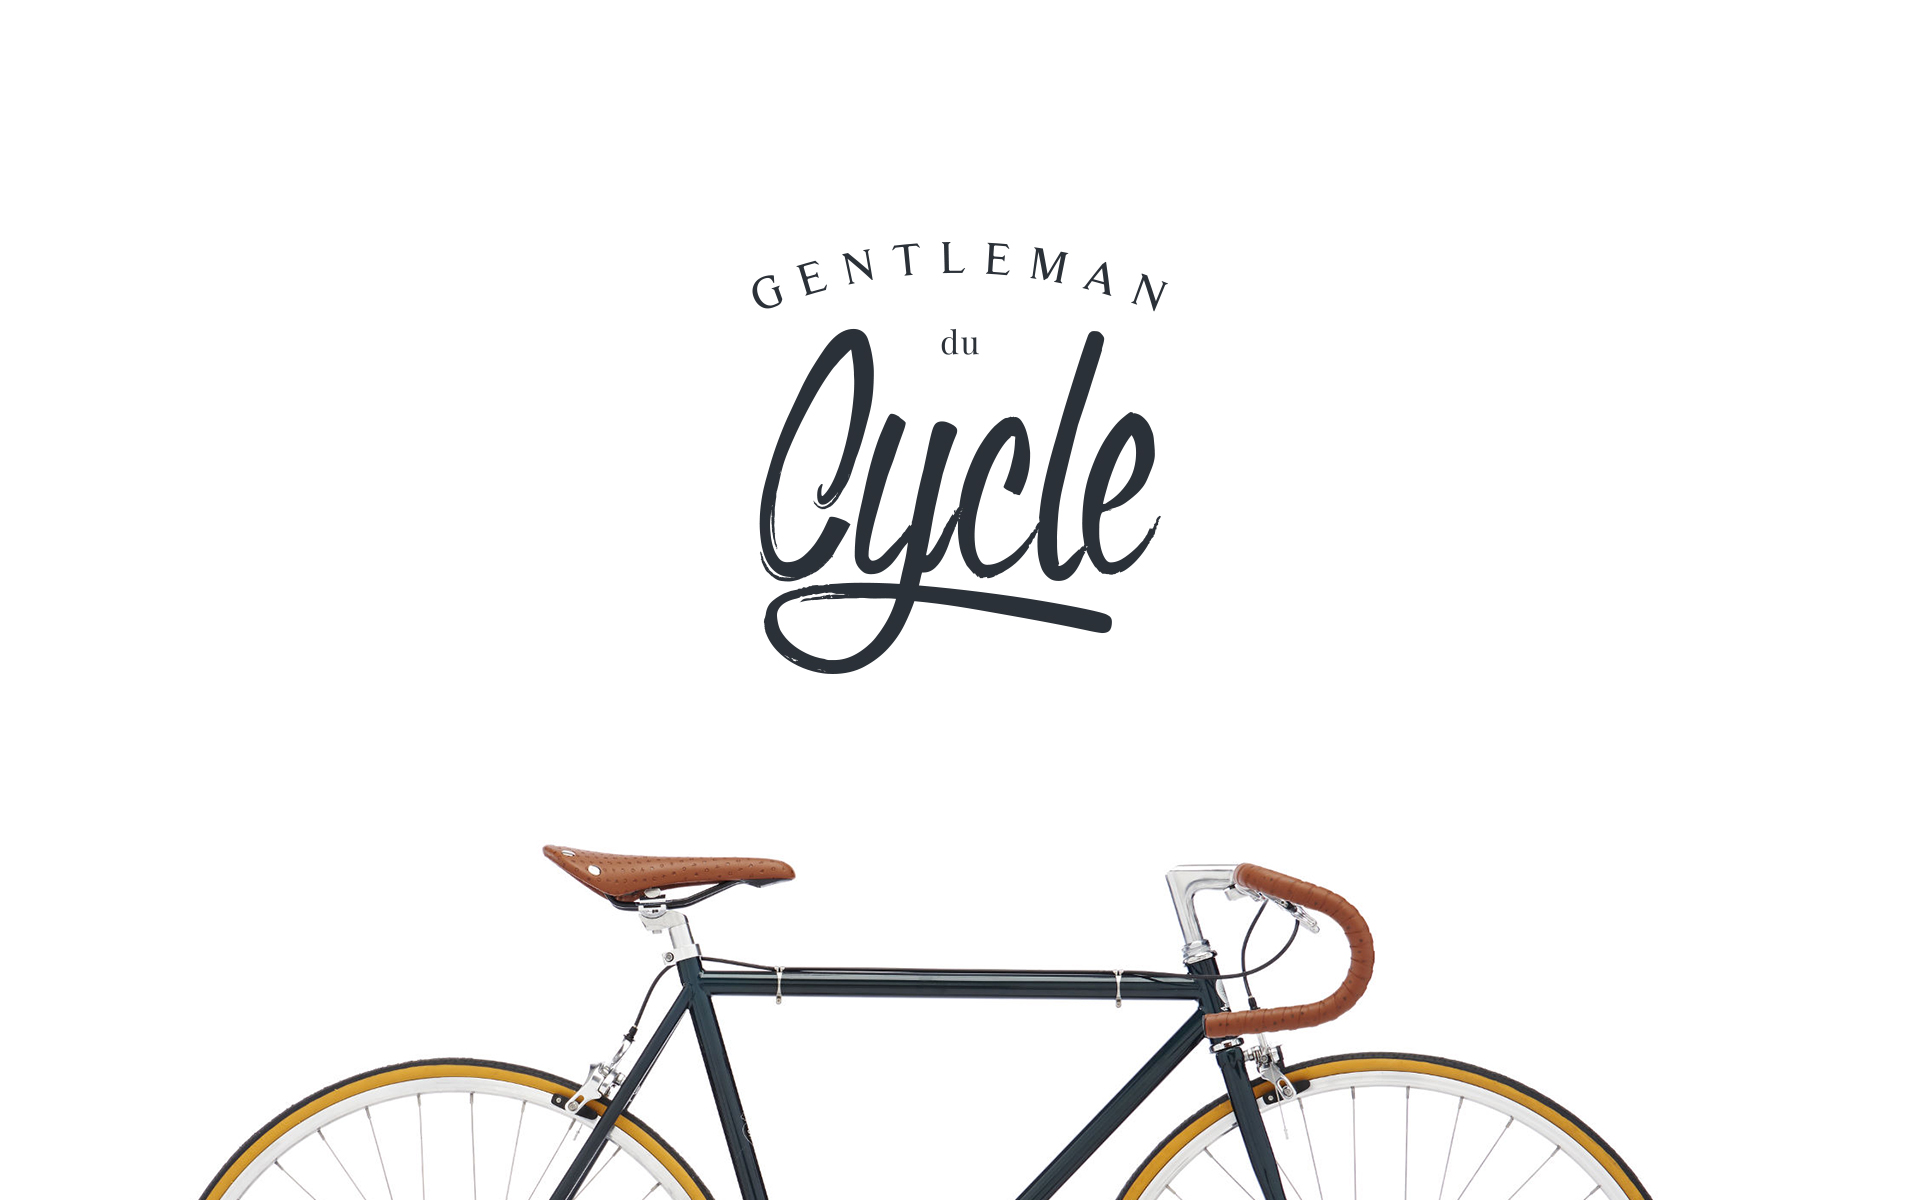 projet_logo-1gentlemanducycle